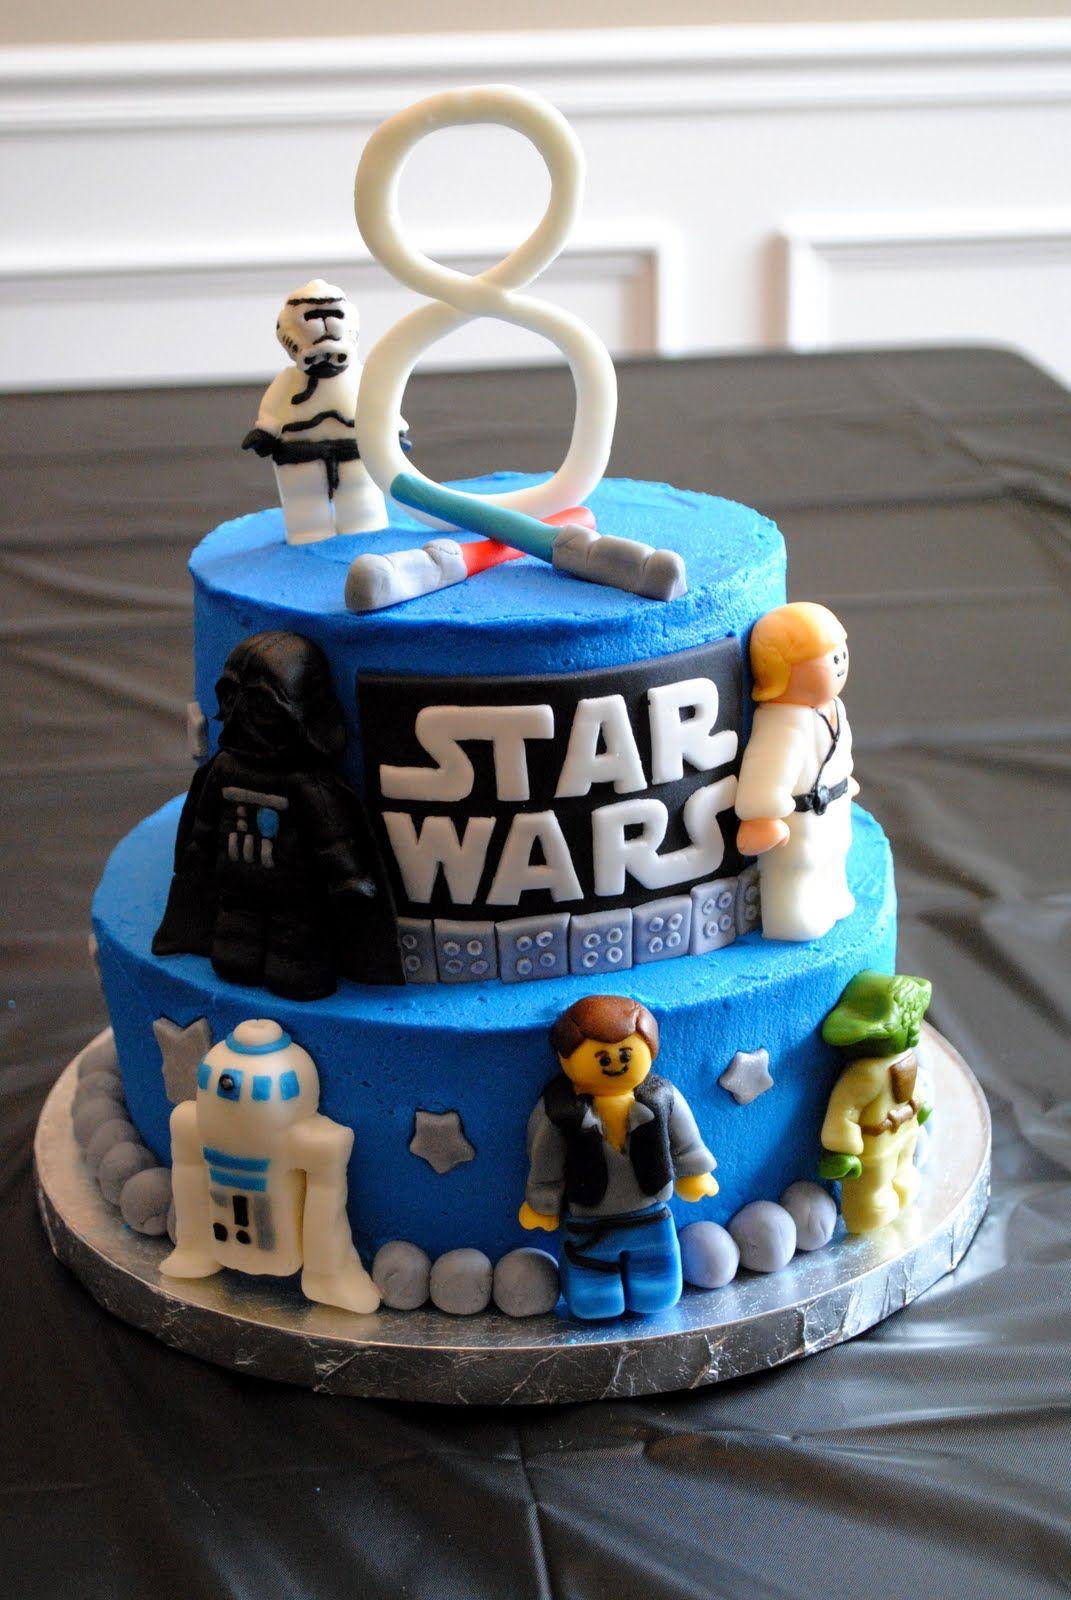 Creative Star Wars Birthday Party Games Ideas This party